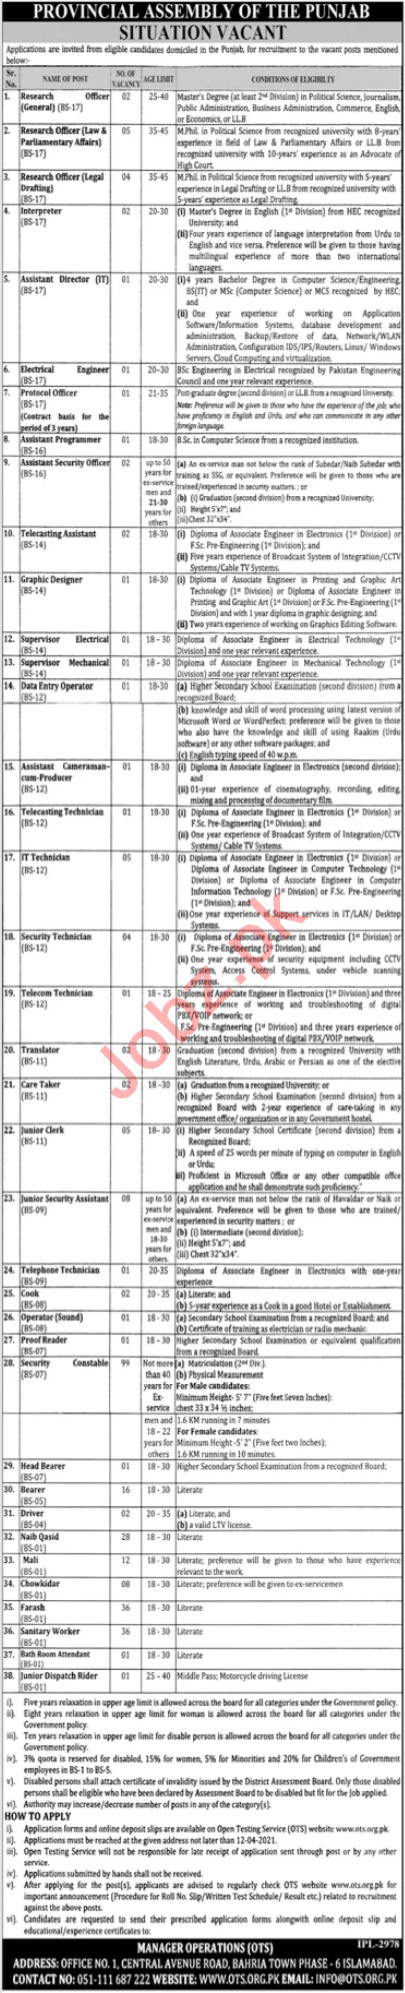 Provincial Assembly of the Punjab Jobs 2021 Research Officer